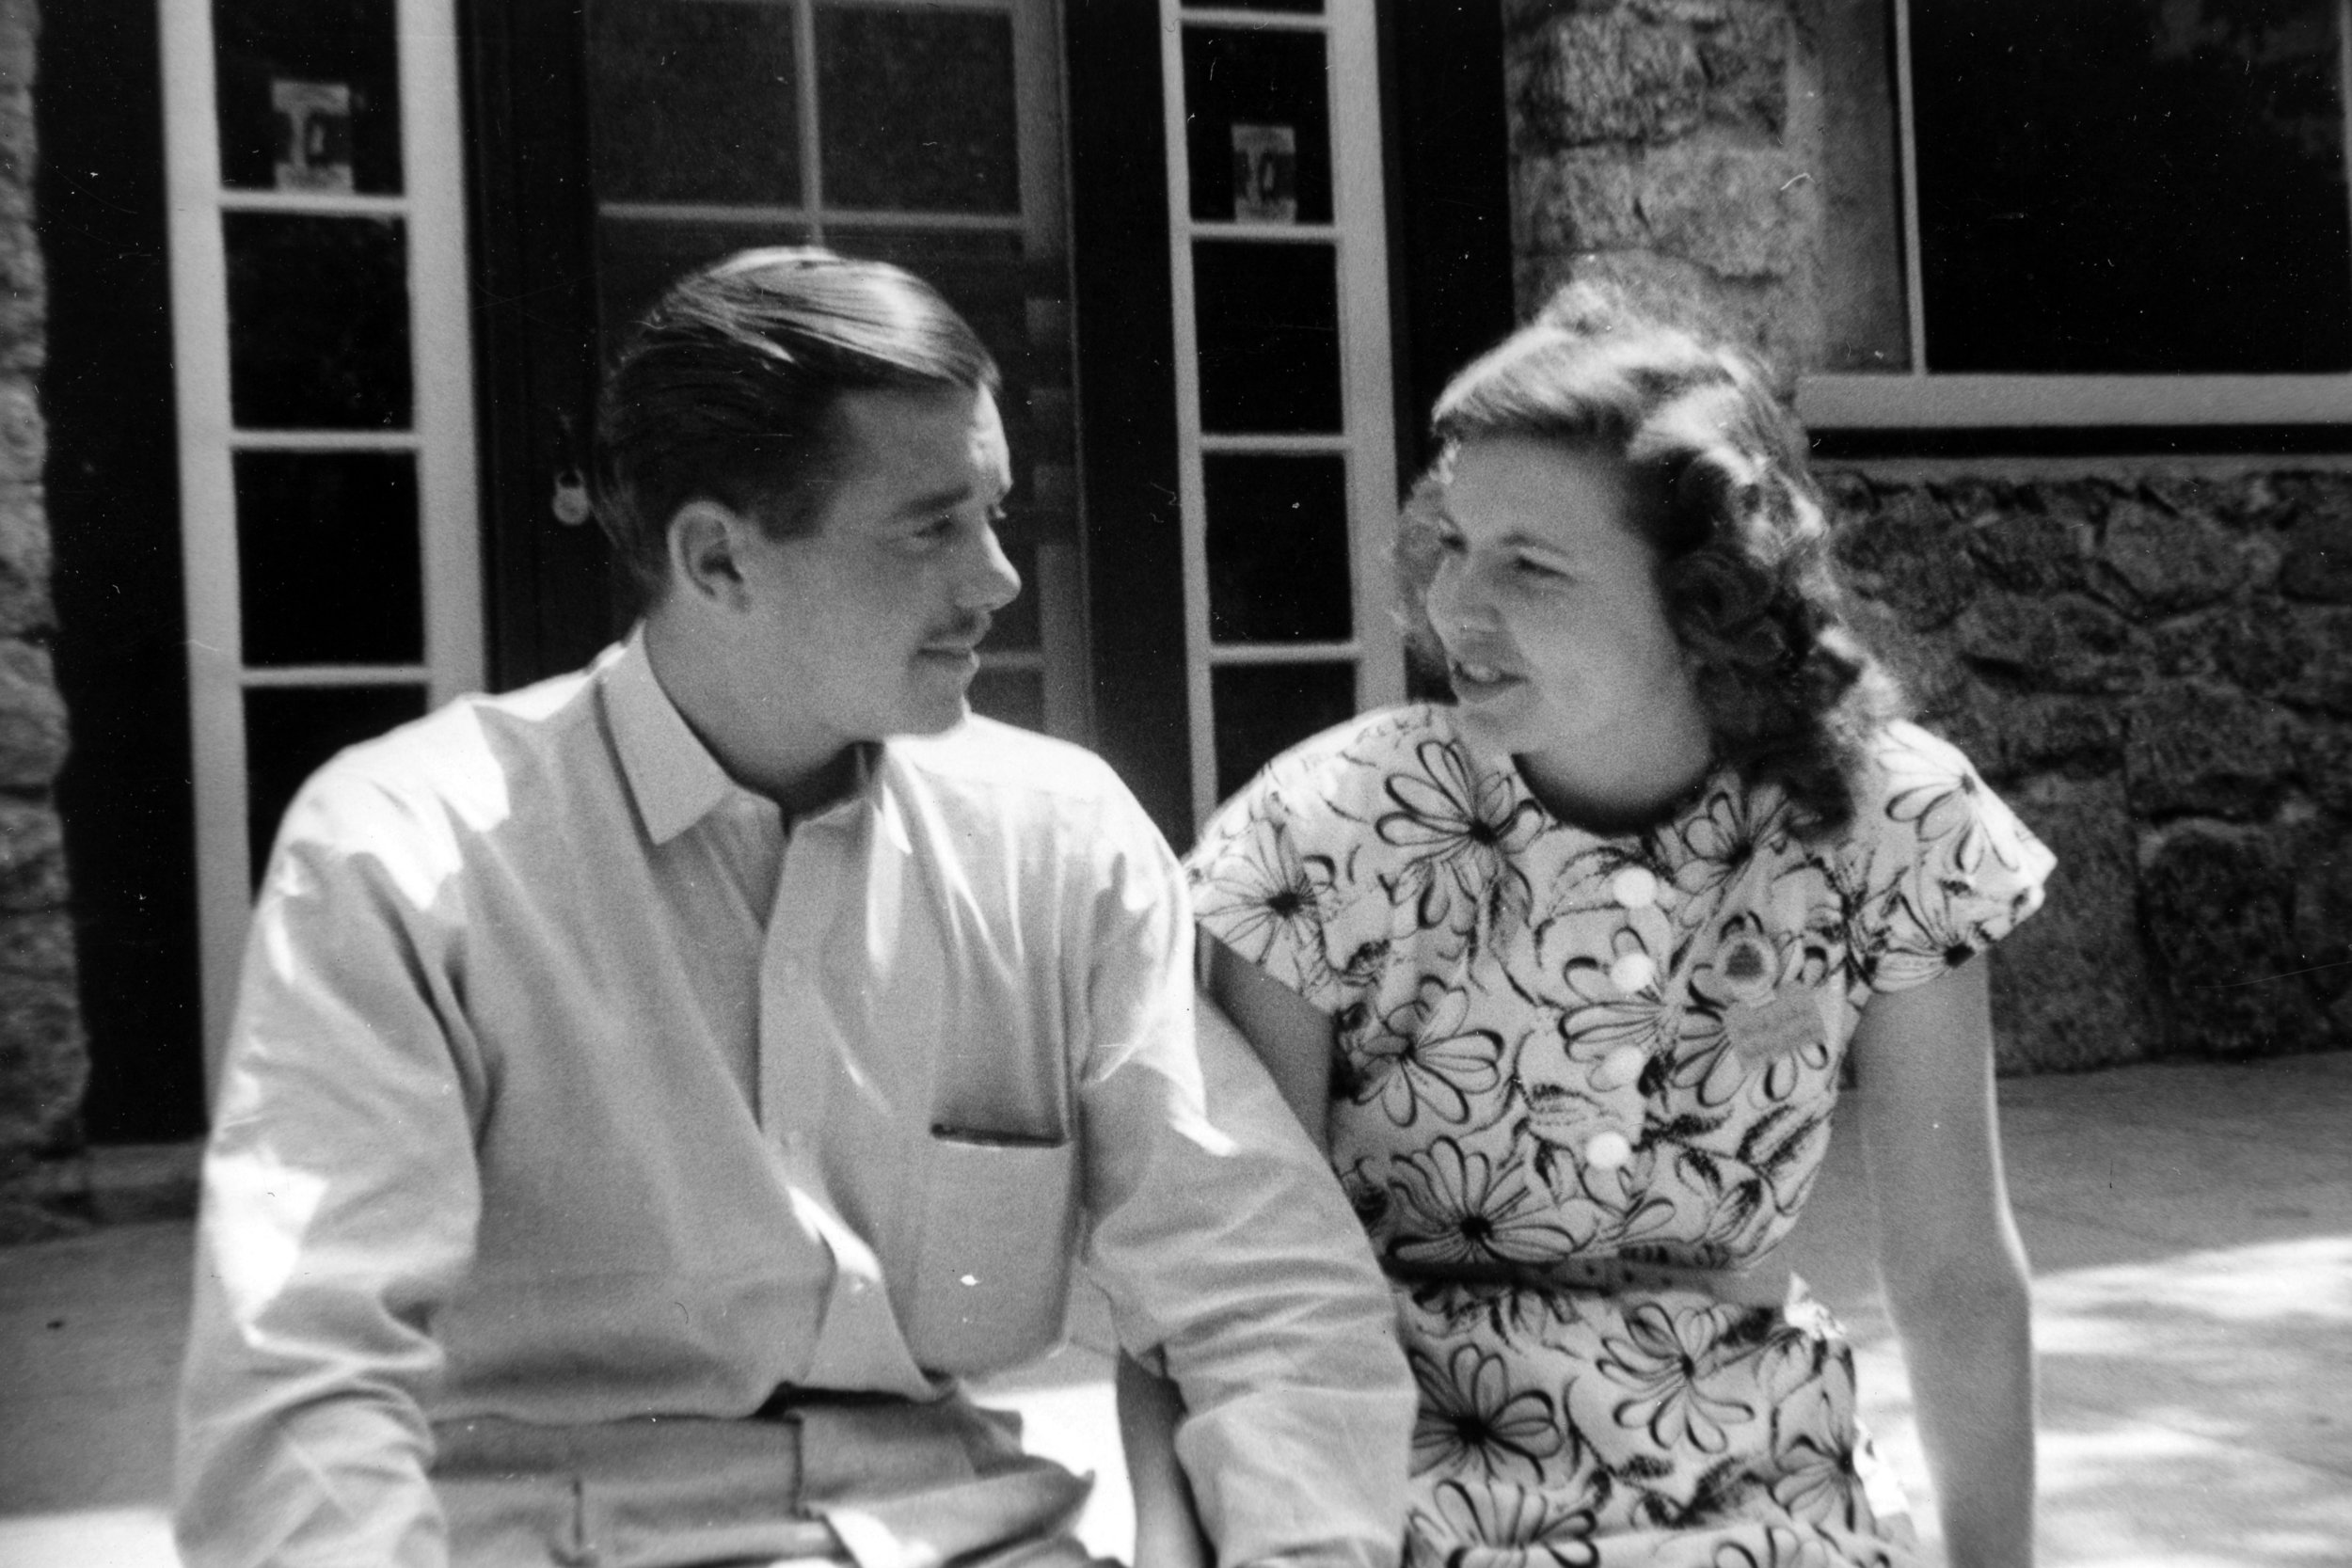 Bill and Vonette at Forest Home in 1946–deciding that God has called them to each other.